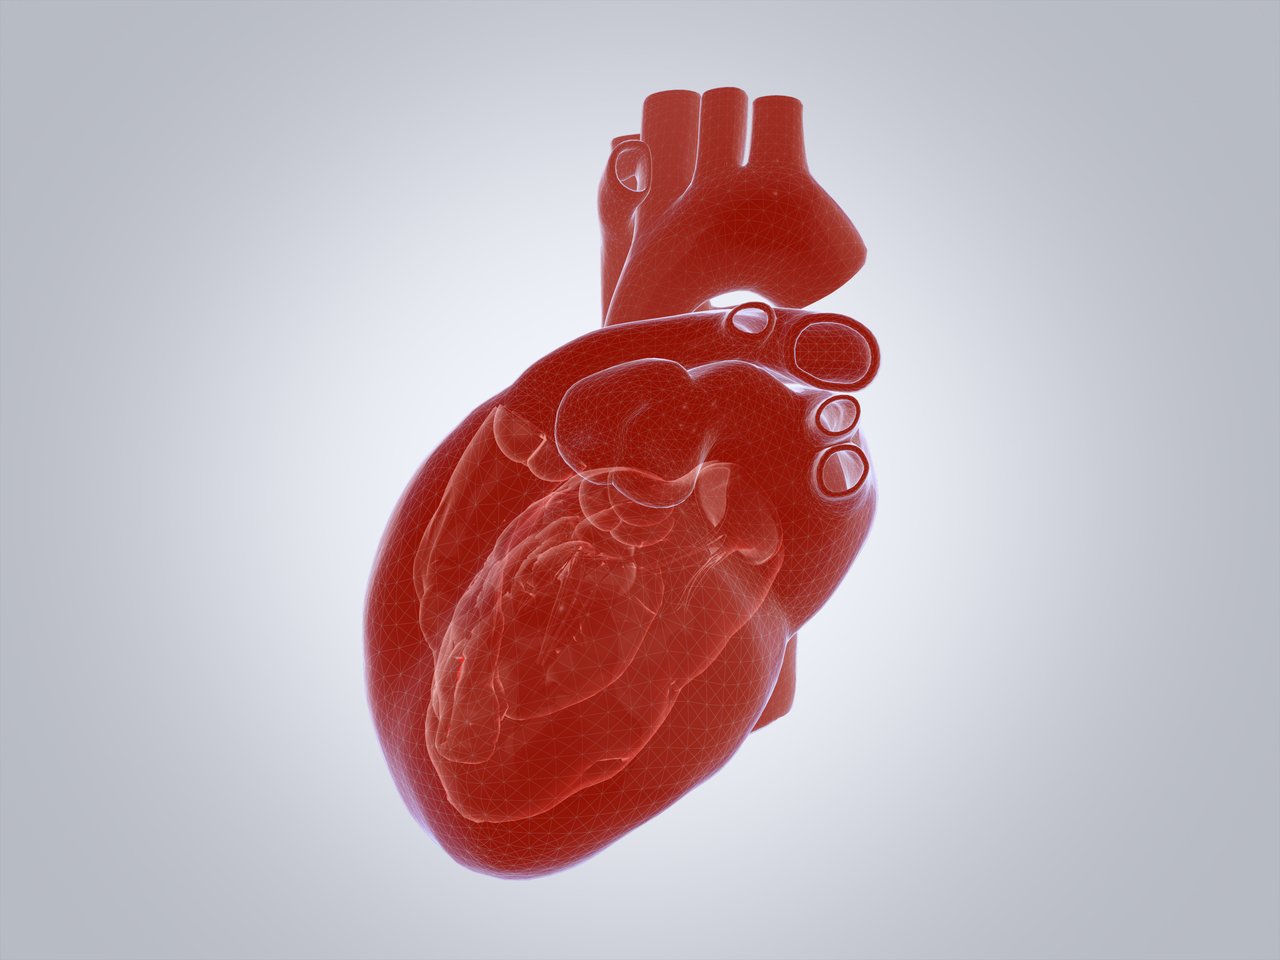 Graphics of a human heart